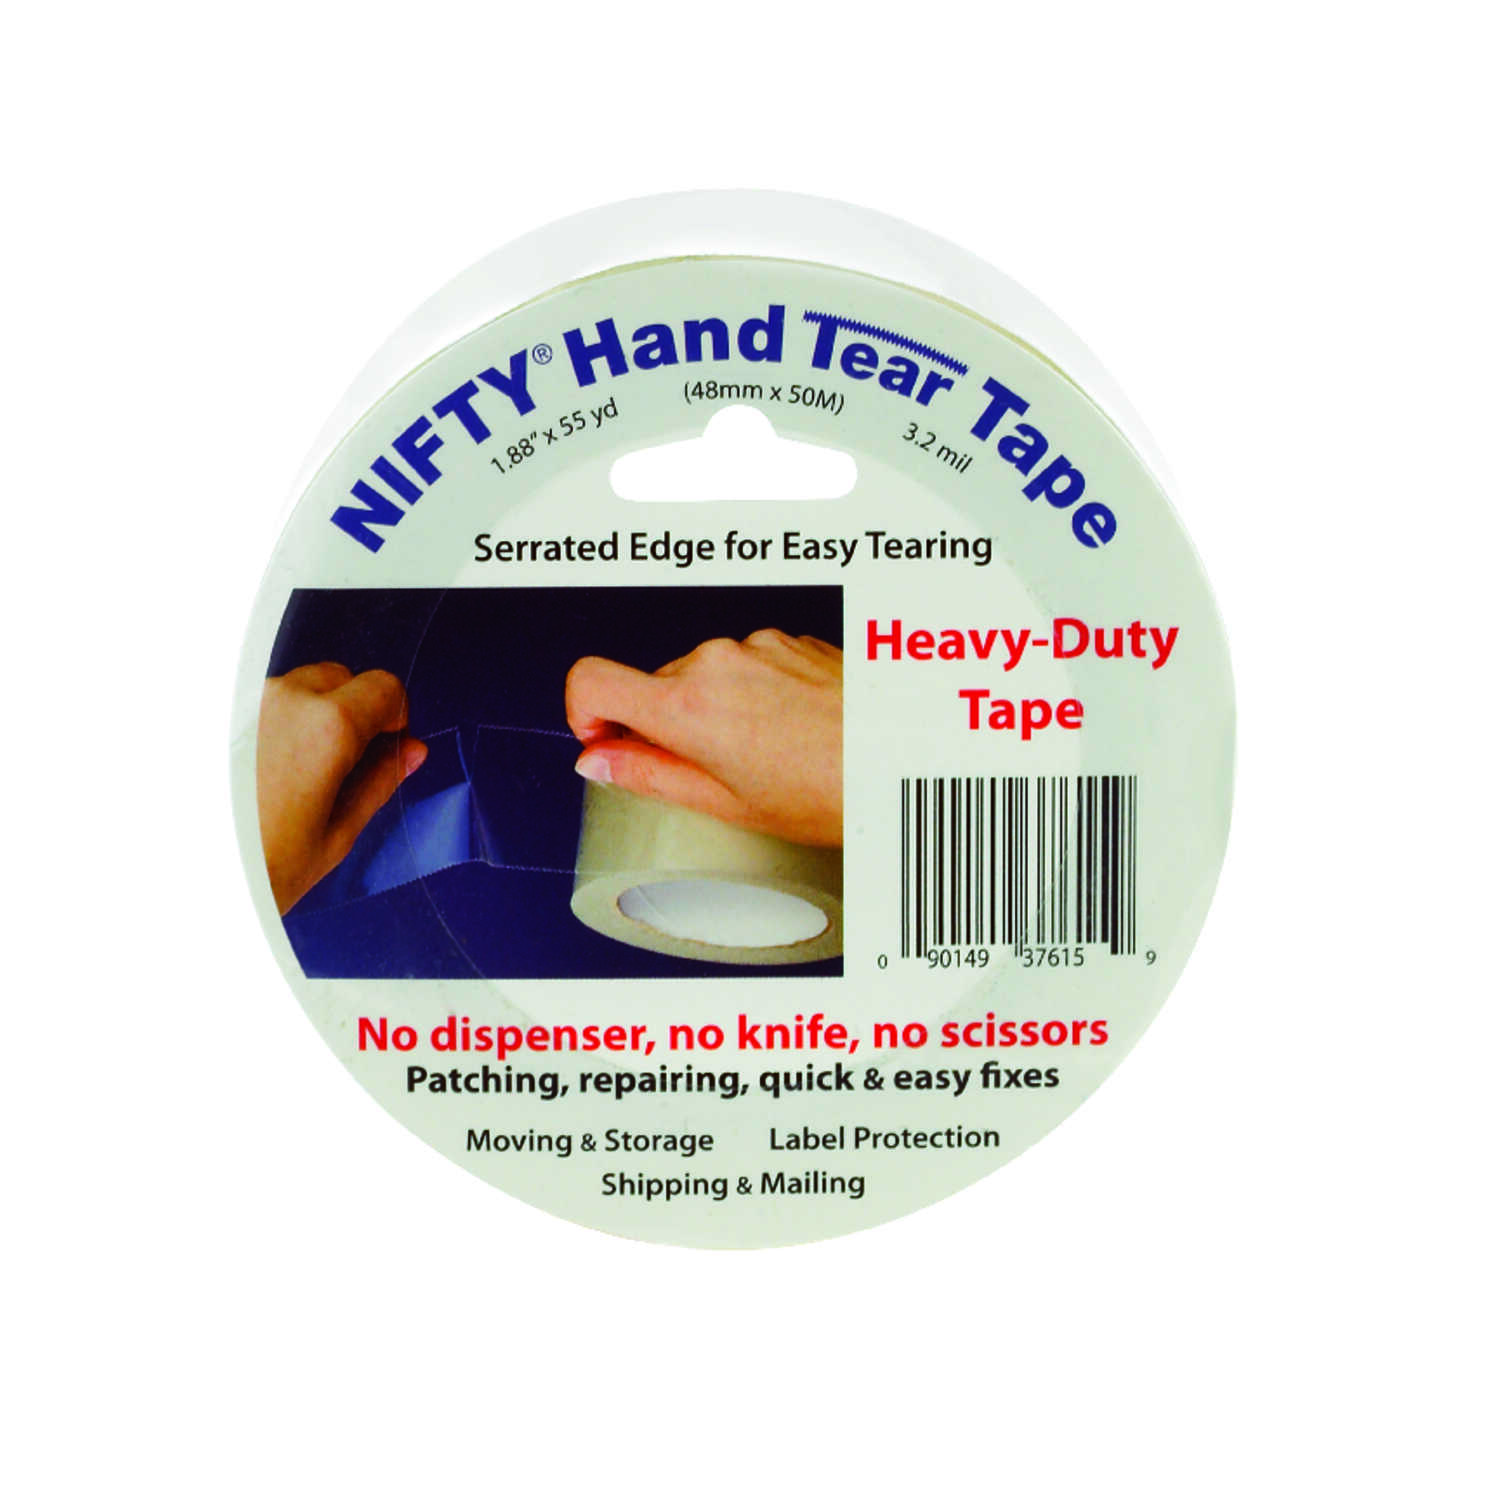 Nifty  1980 in. L x 2 in. W Hand Tear Tape  Tape  Clear